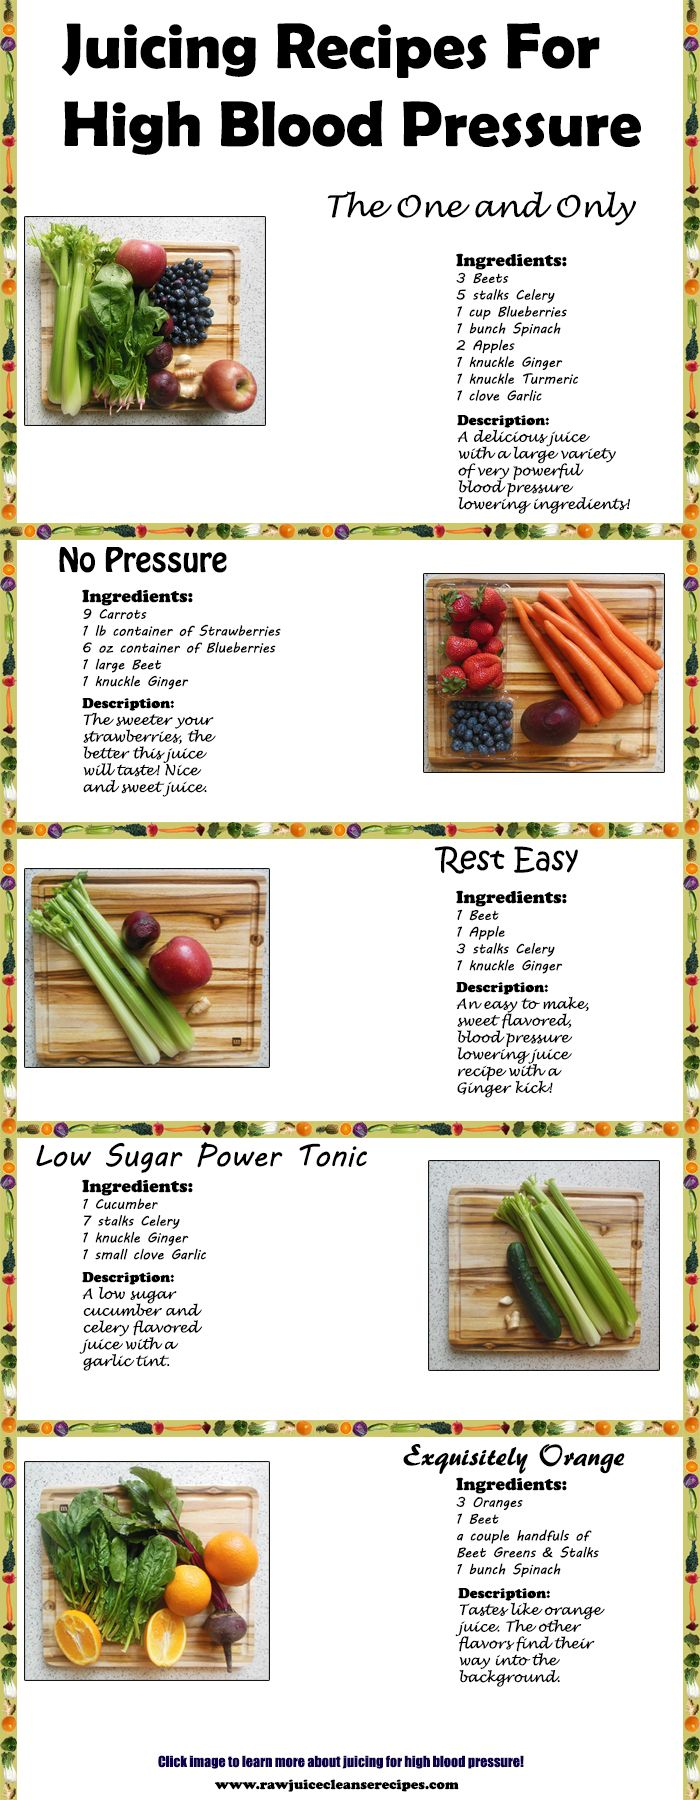 Colour therapy for high bp - 5 Powerful Juice Recipes To Lower High Blood Pressure Plus More Specific Info About The